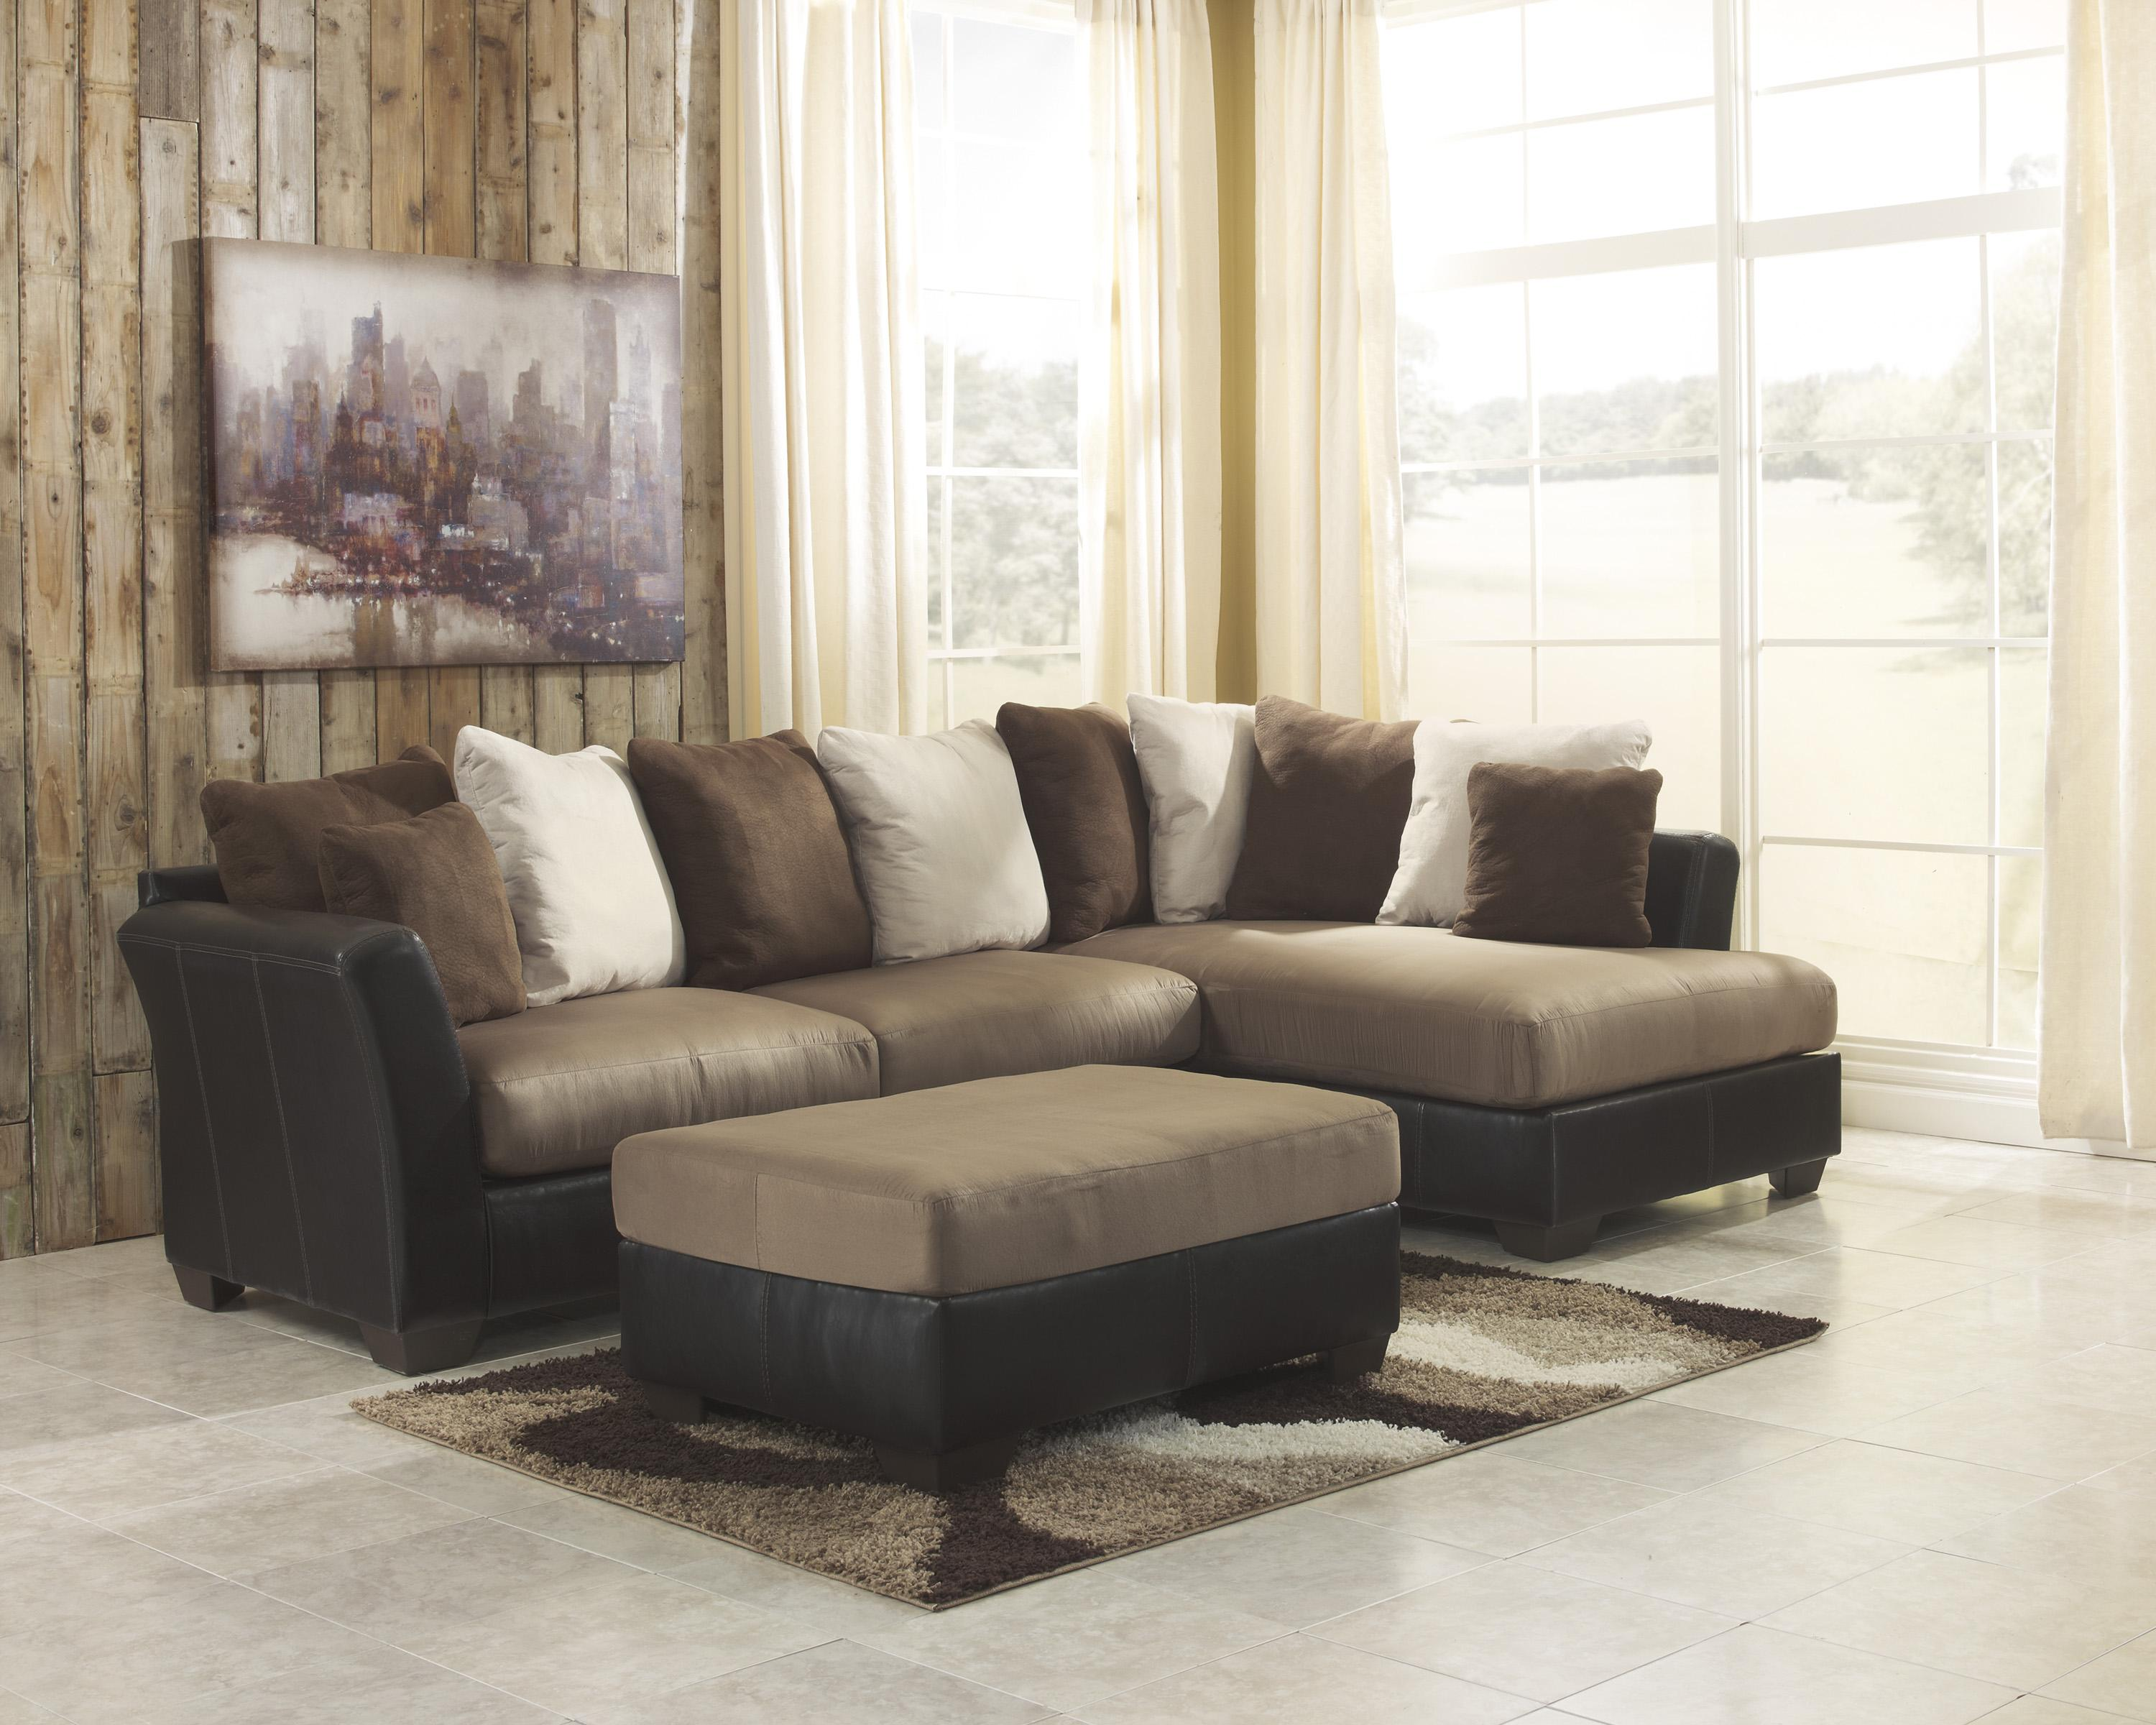 Benchcraft Masoli - Mocha Stationary Living Room Group - Item Number: 14201 Living Room Group 3